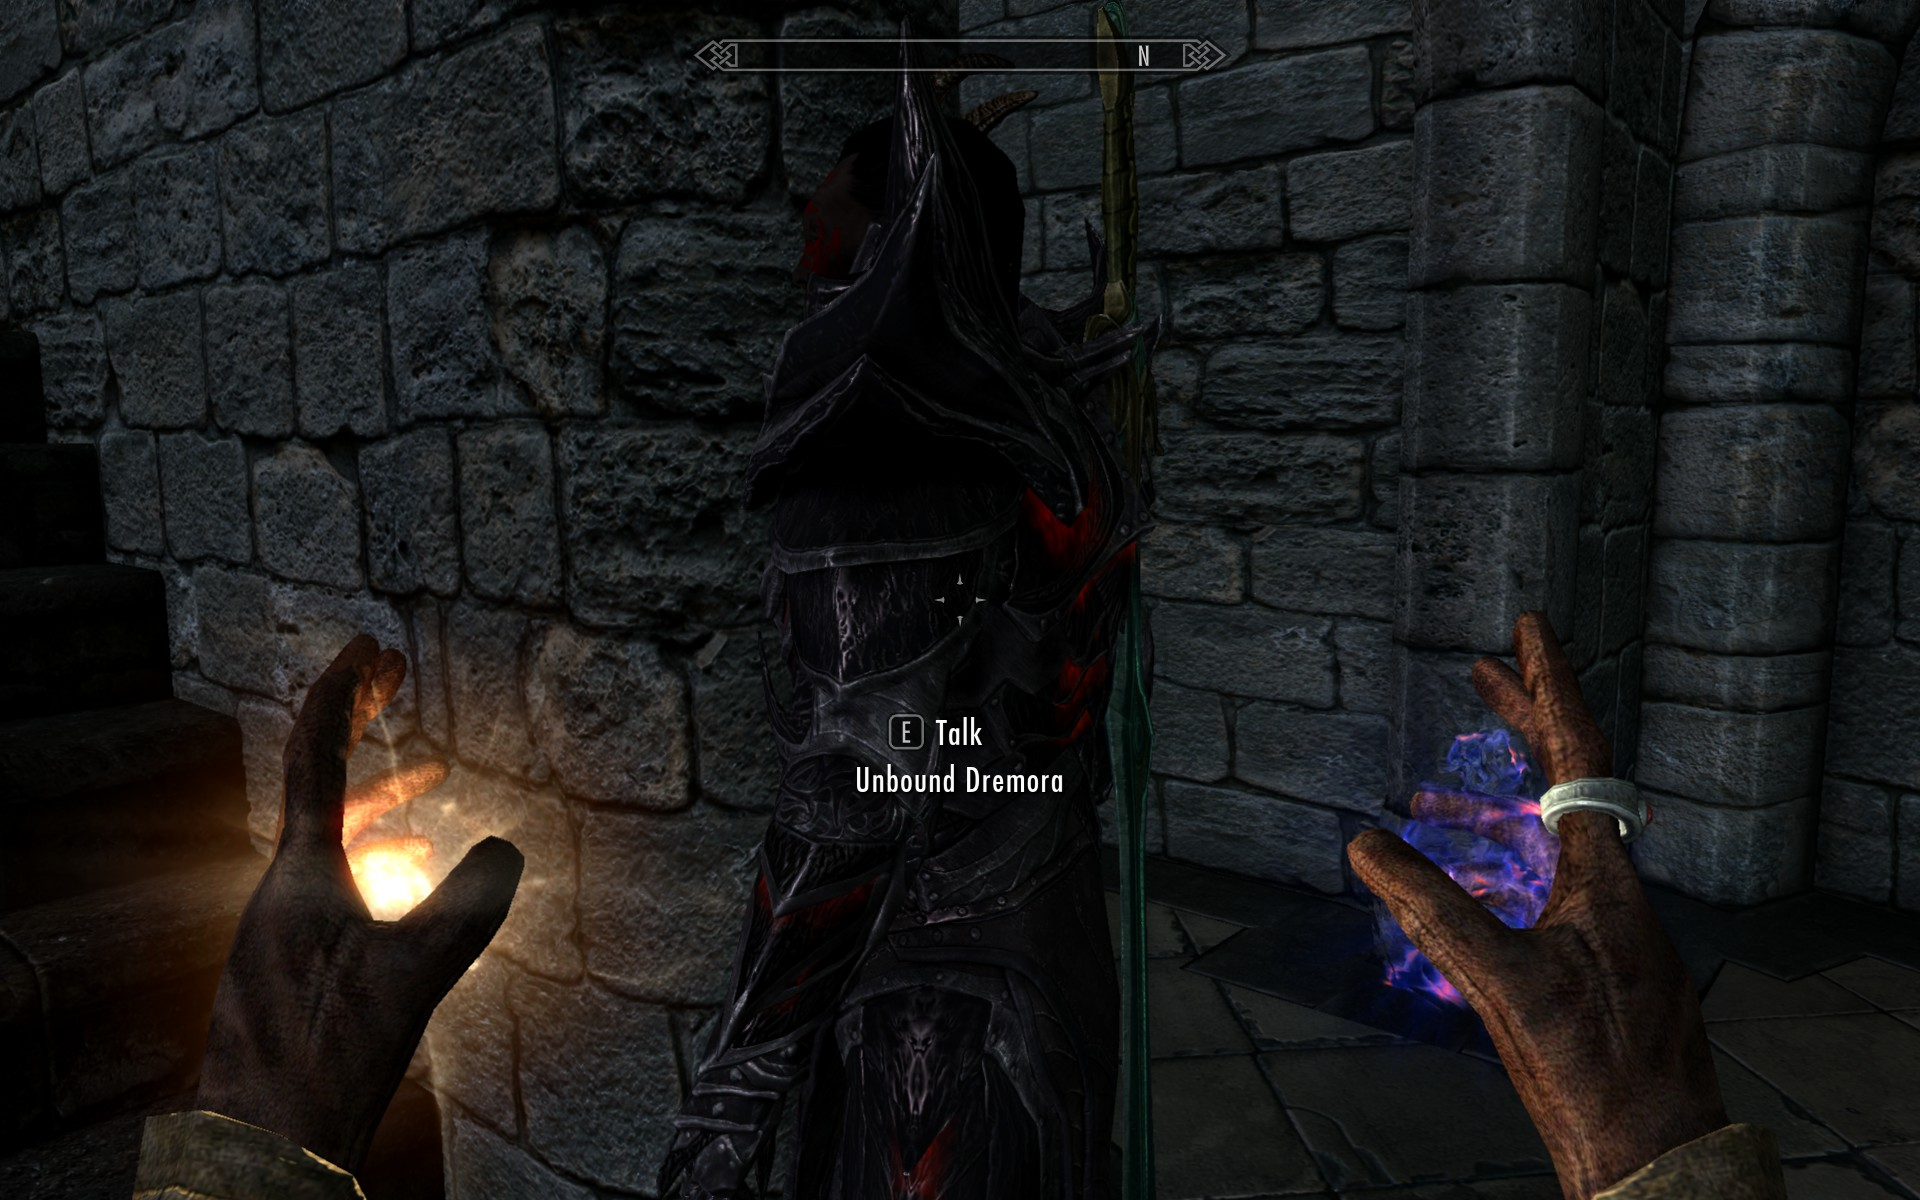 Found an unbound dremora wandering the halls of the College of Winterhold.